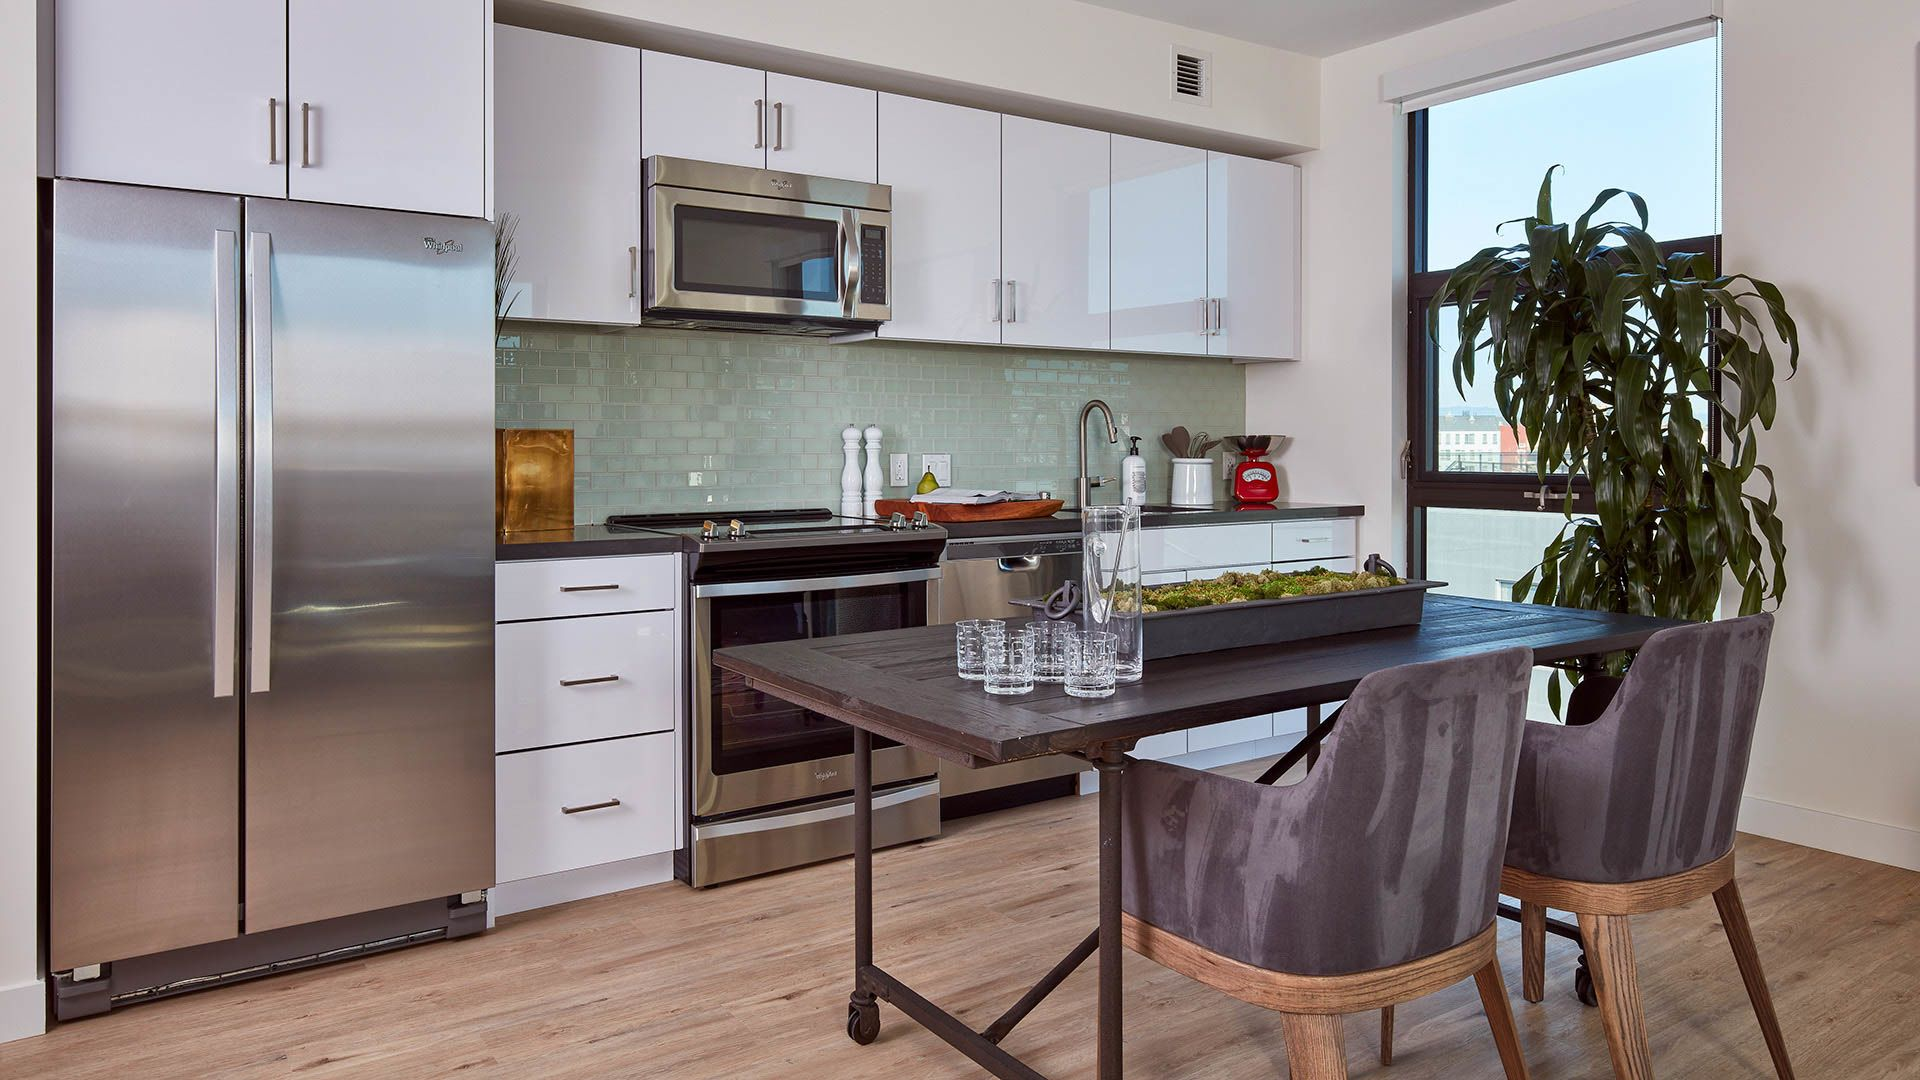 One Henry Adams Apartments - Kitchen and Dining Area